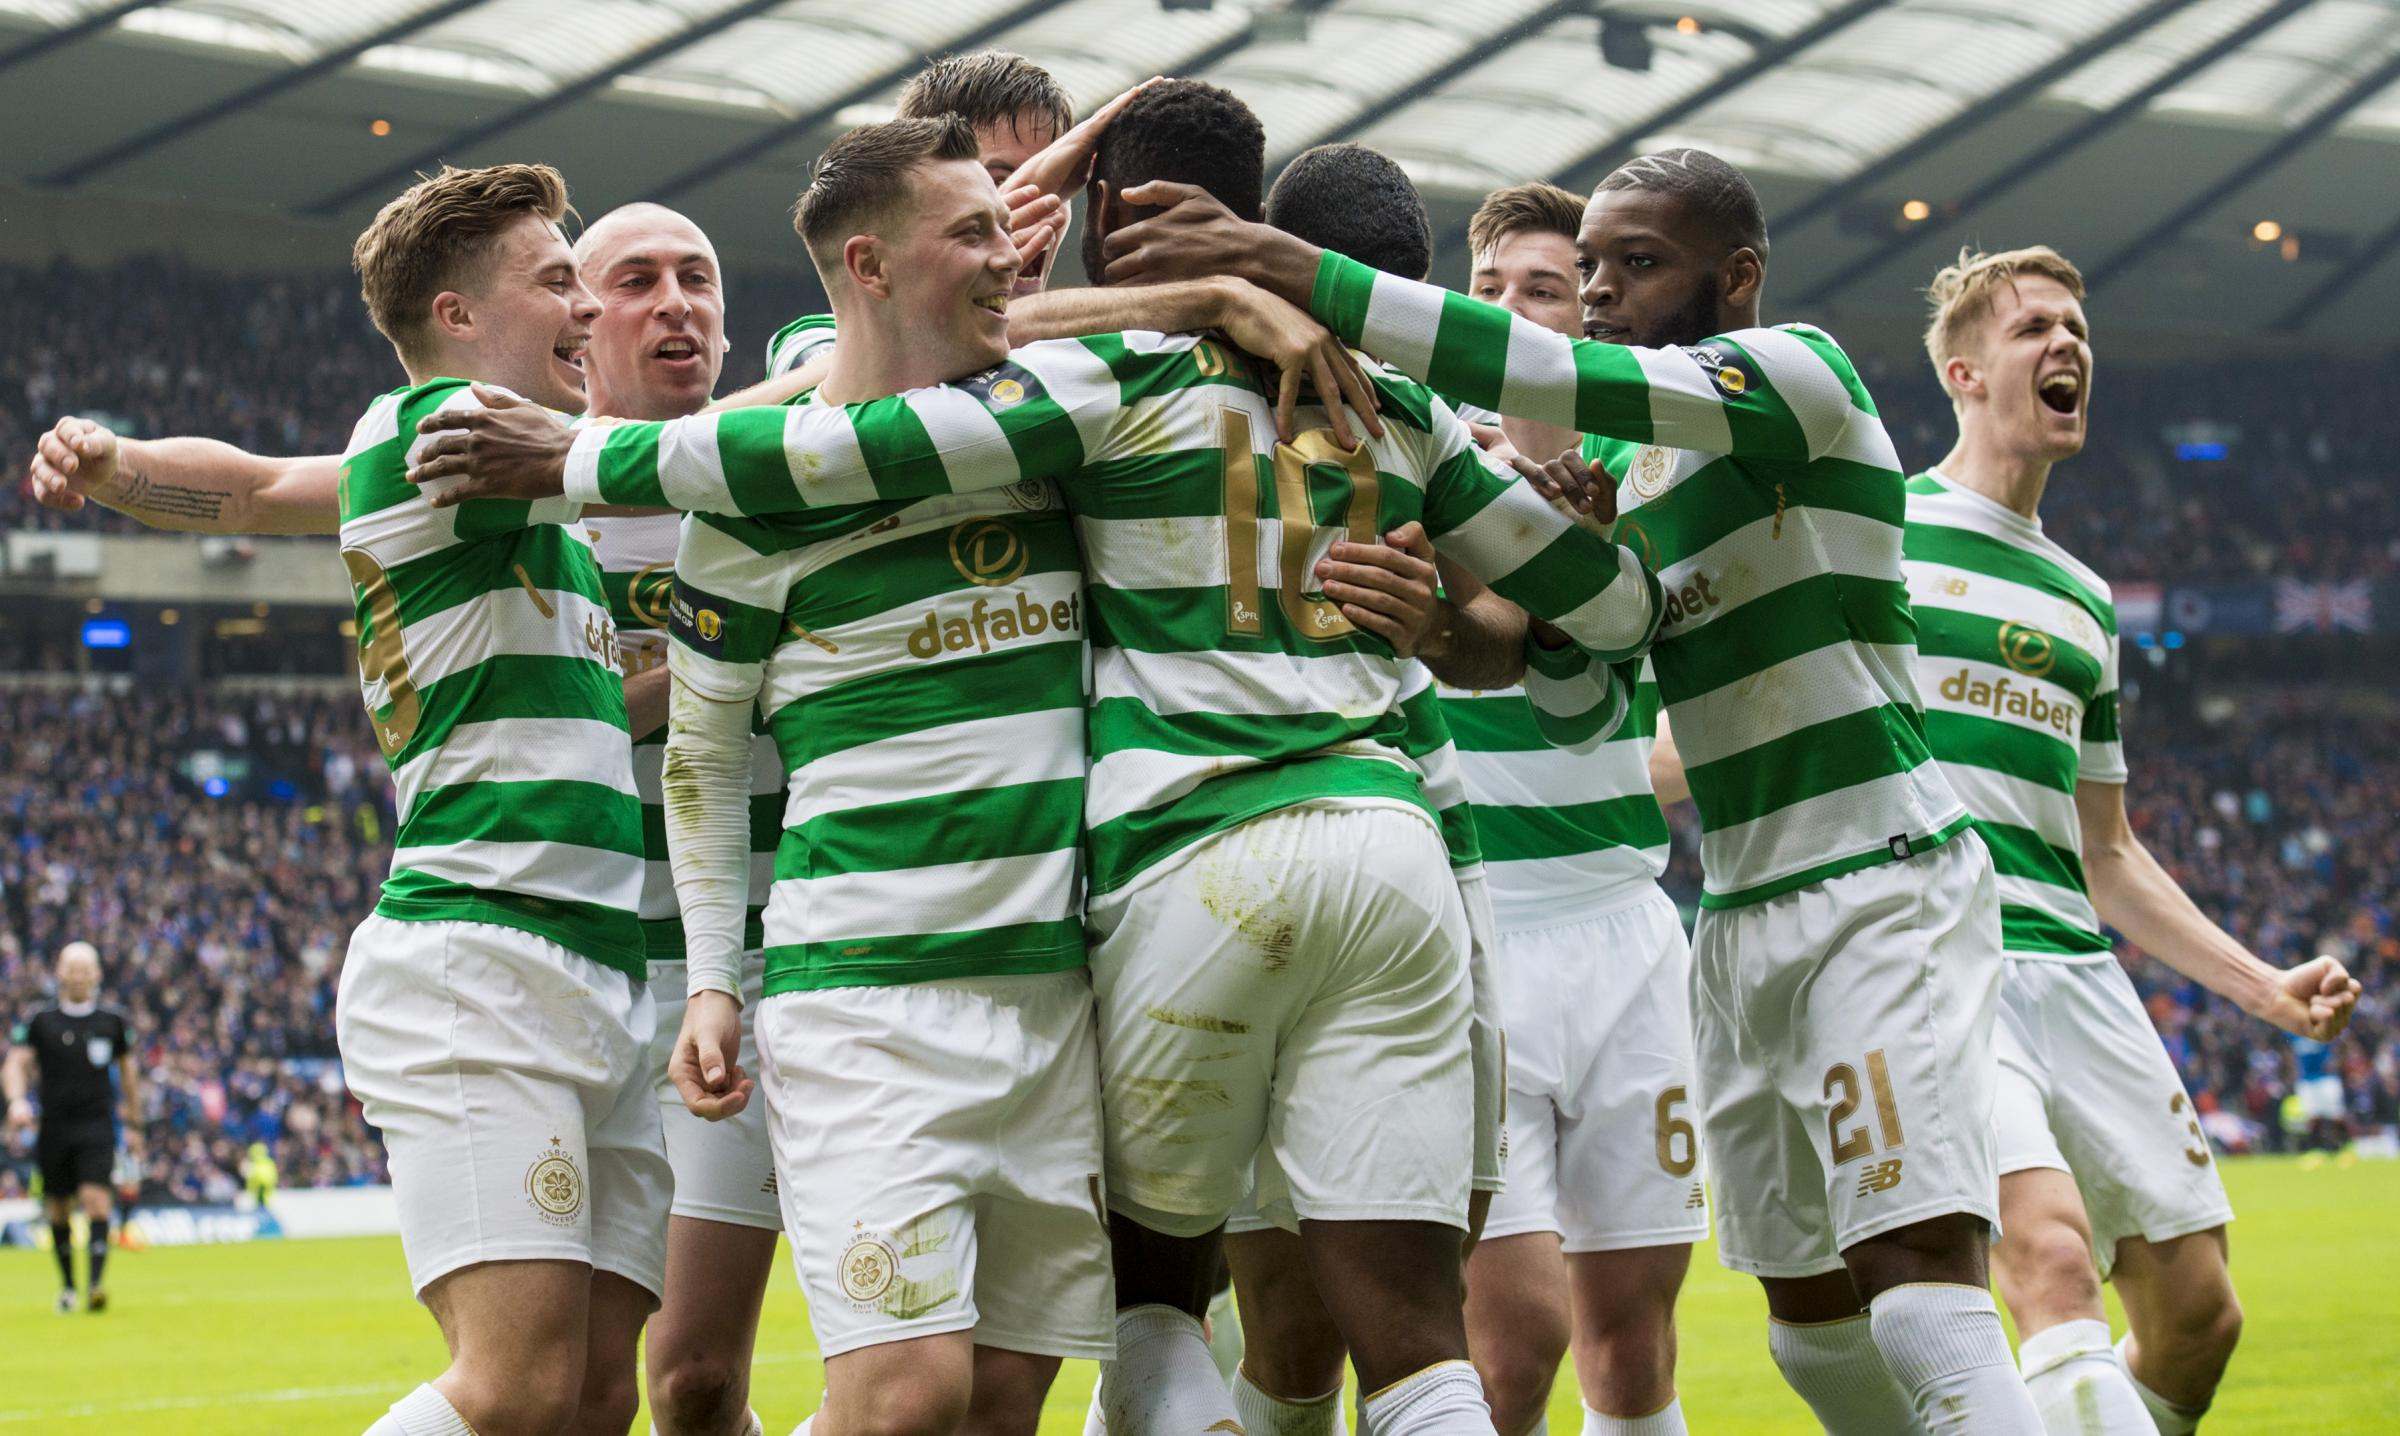 Celtic celebrate after scoring. Picture: SNS.